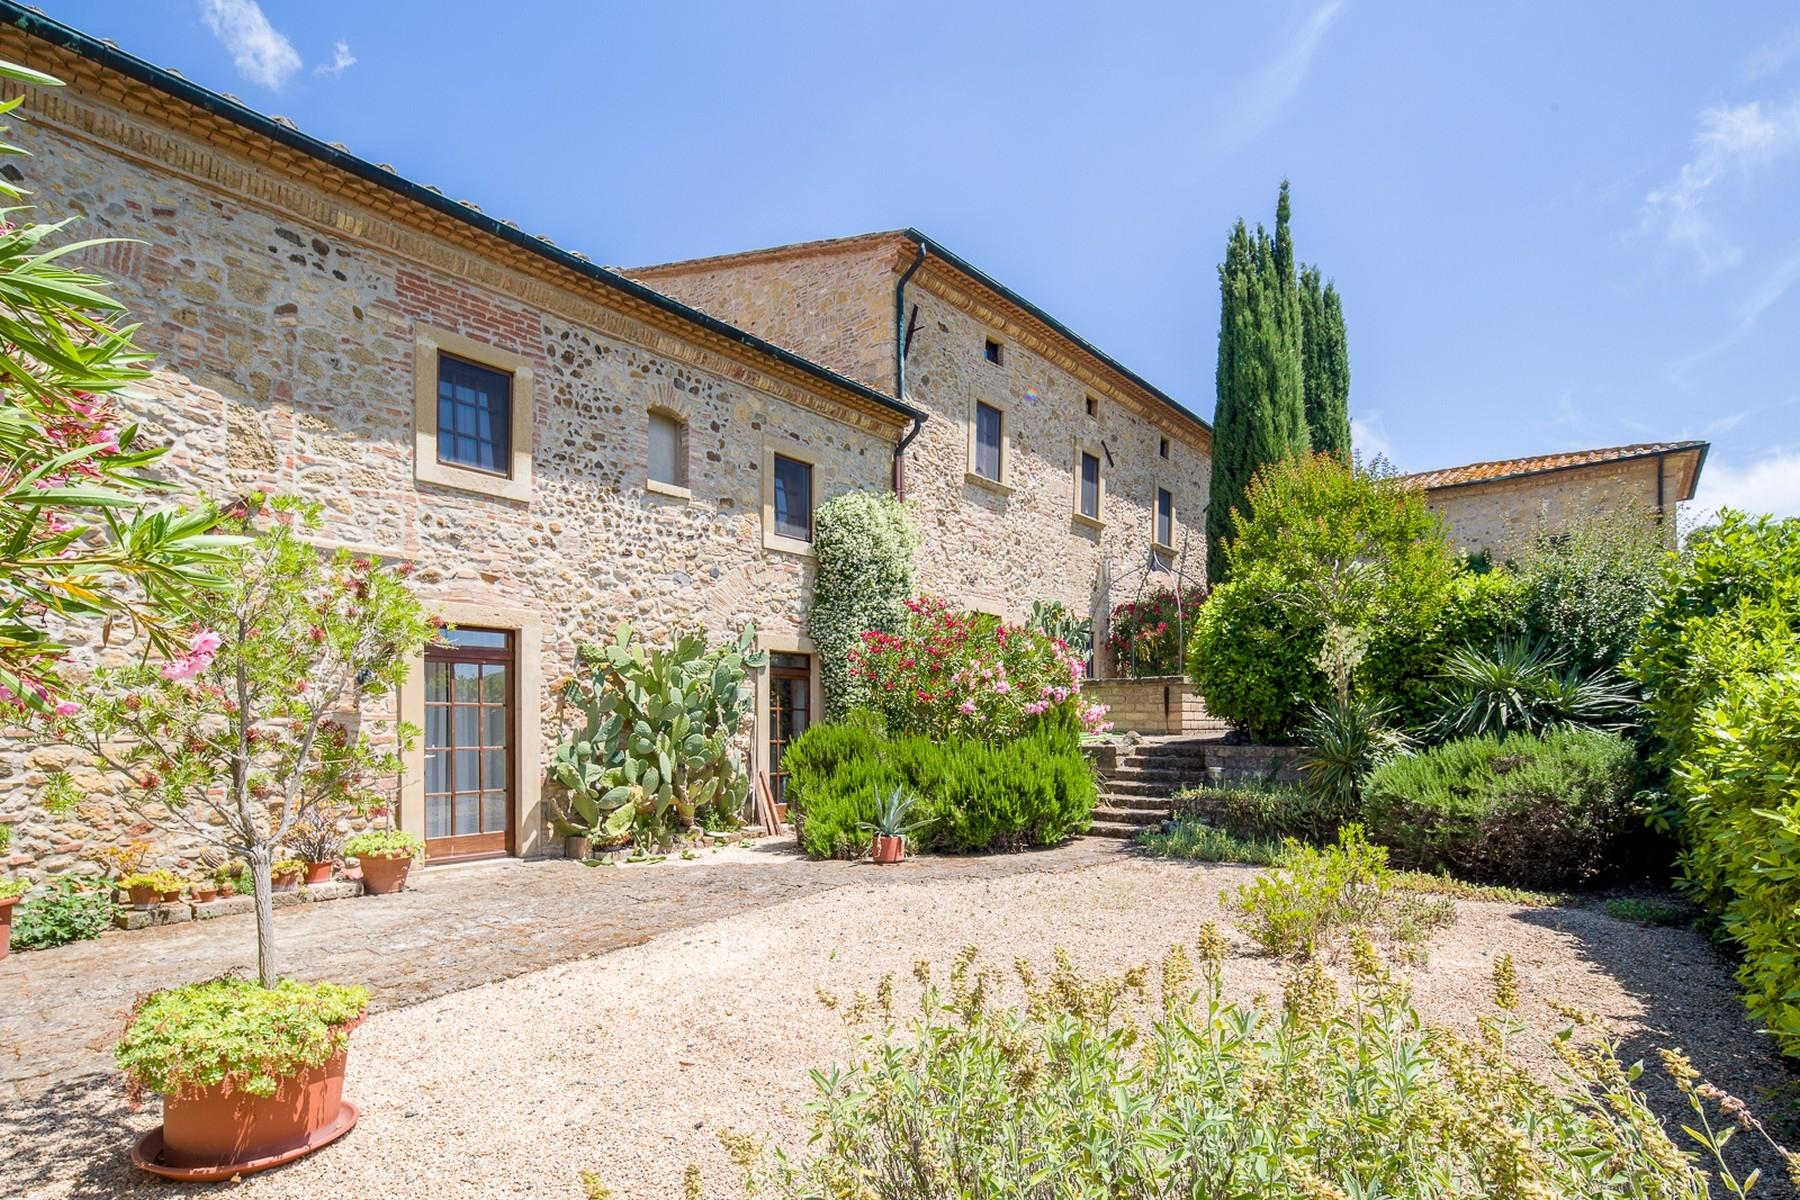 Beautiful countryhouse in the heart of the Etruscan land - 6